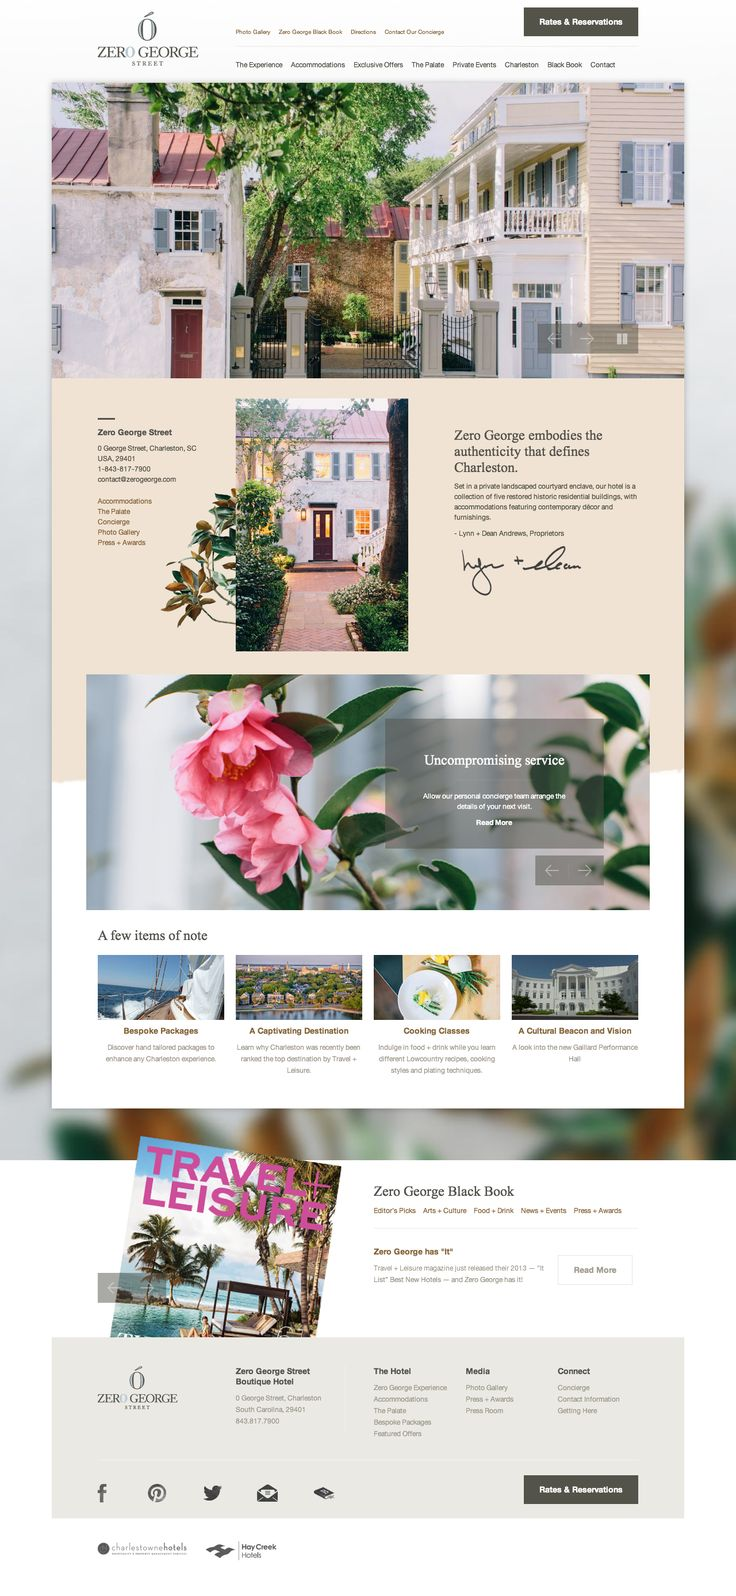 zero george street boutique hotel website homepage charleston sc website design web